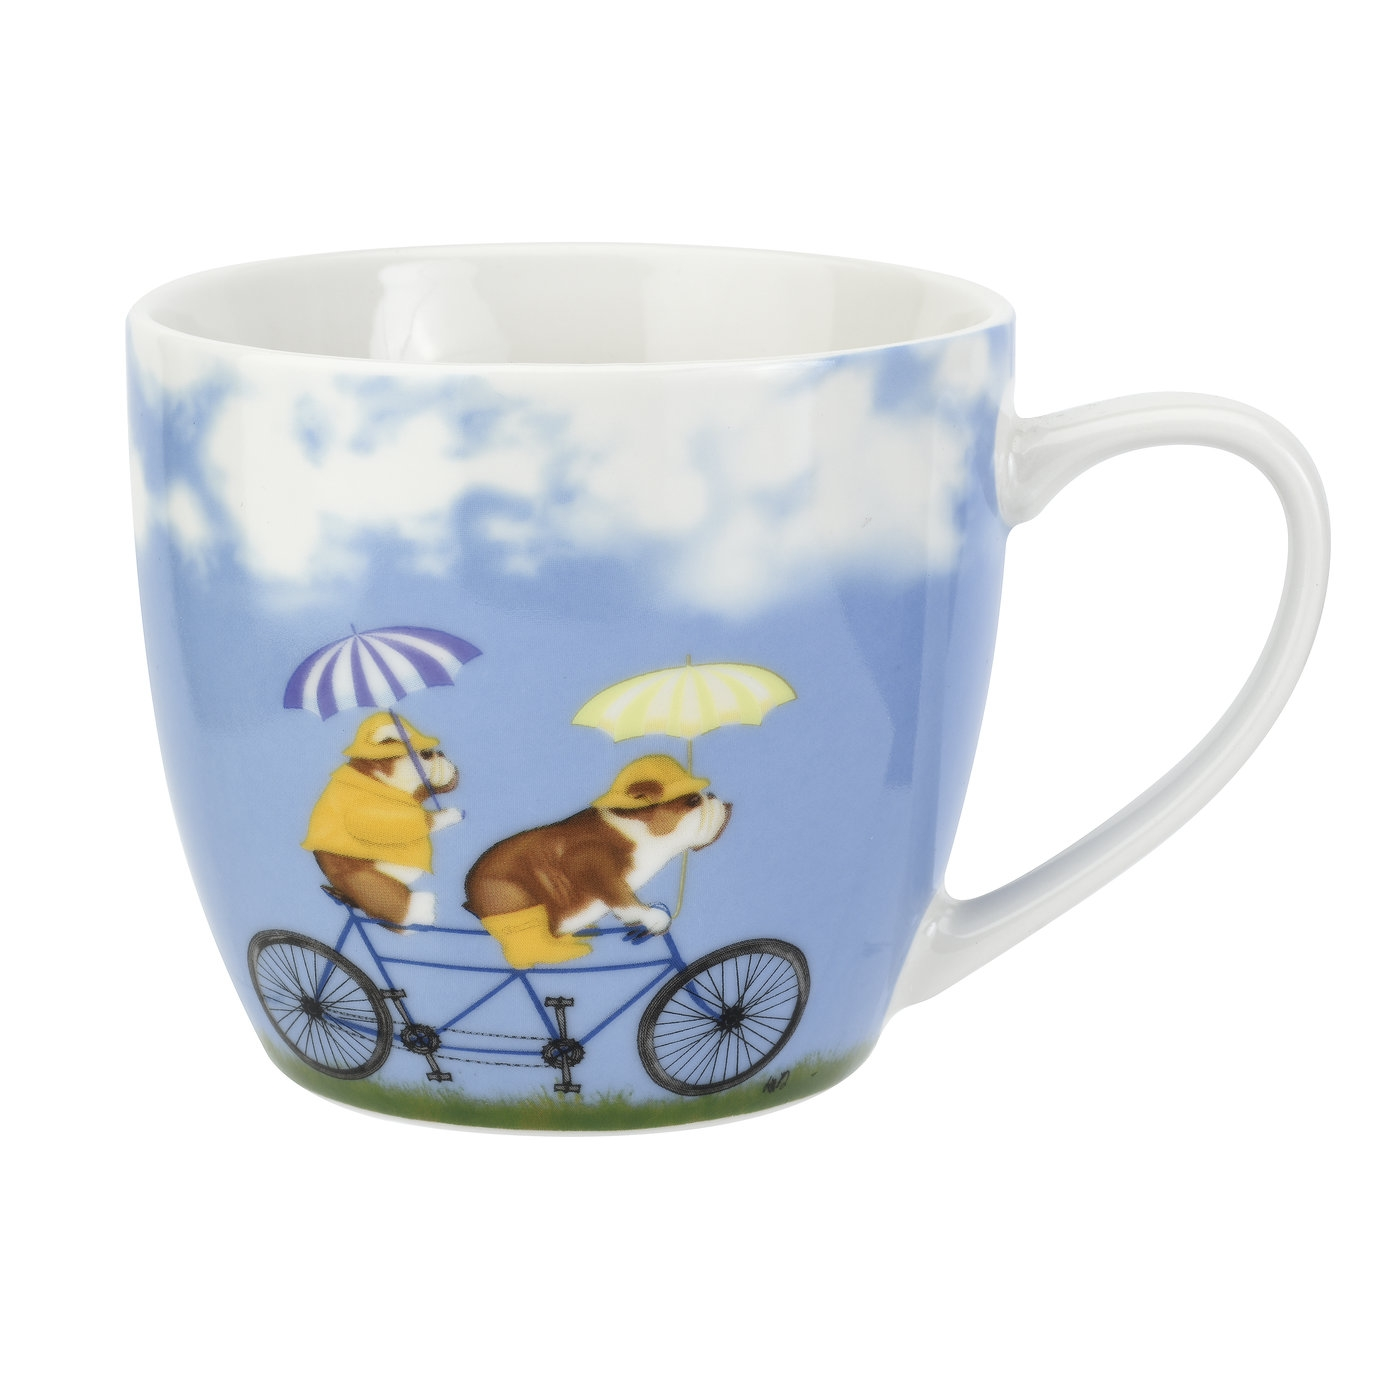 Pimpernel Pedaling Pups English Bulldog 16oz Mug image number 0